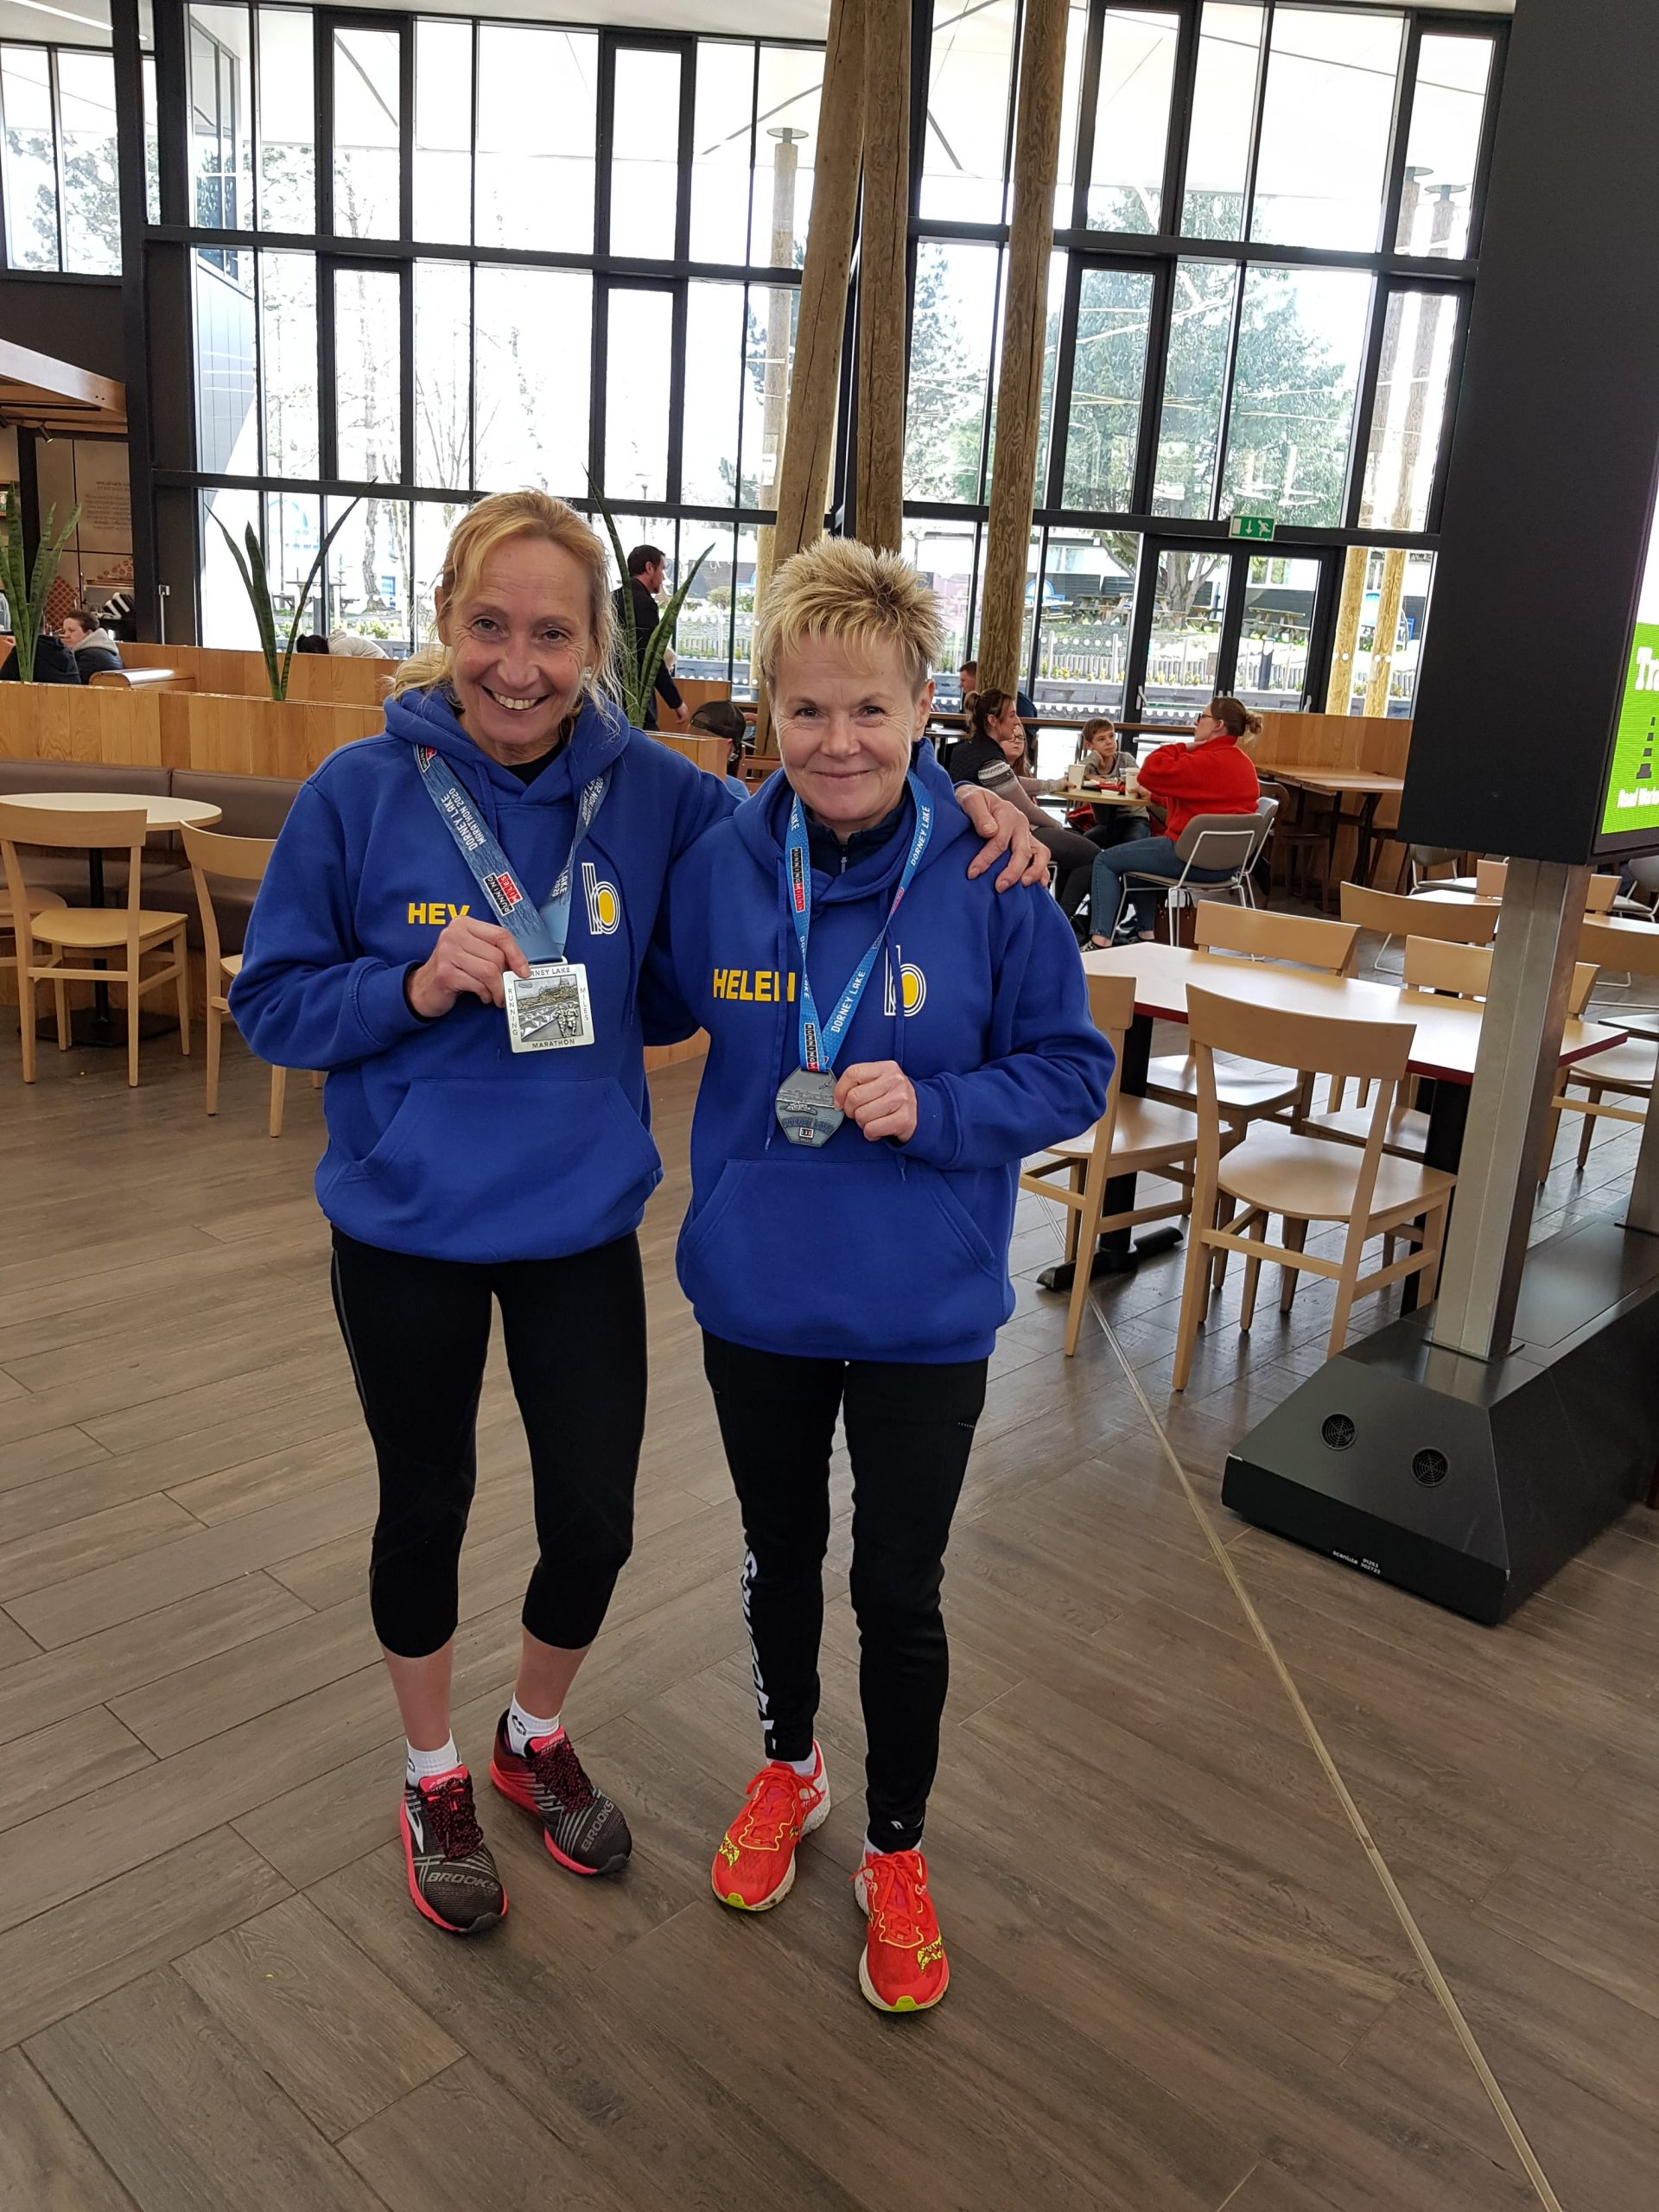 Heather Khoshnevis and Helen Ambrosen after the Dorney Lake Timed Event